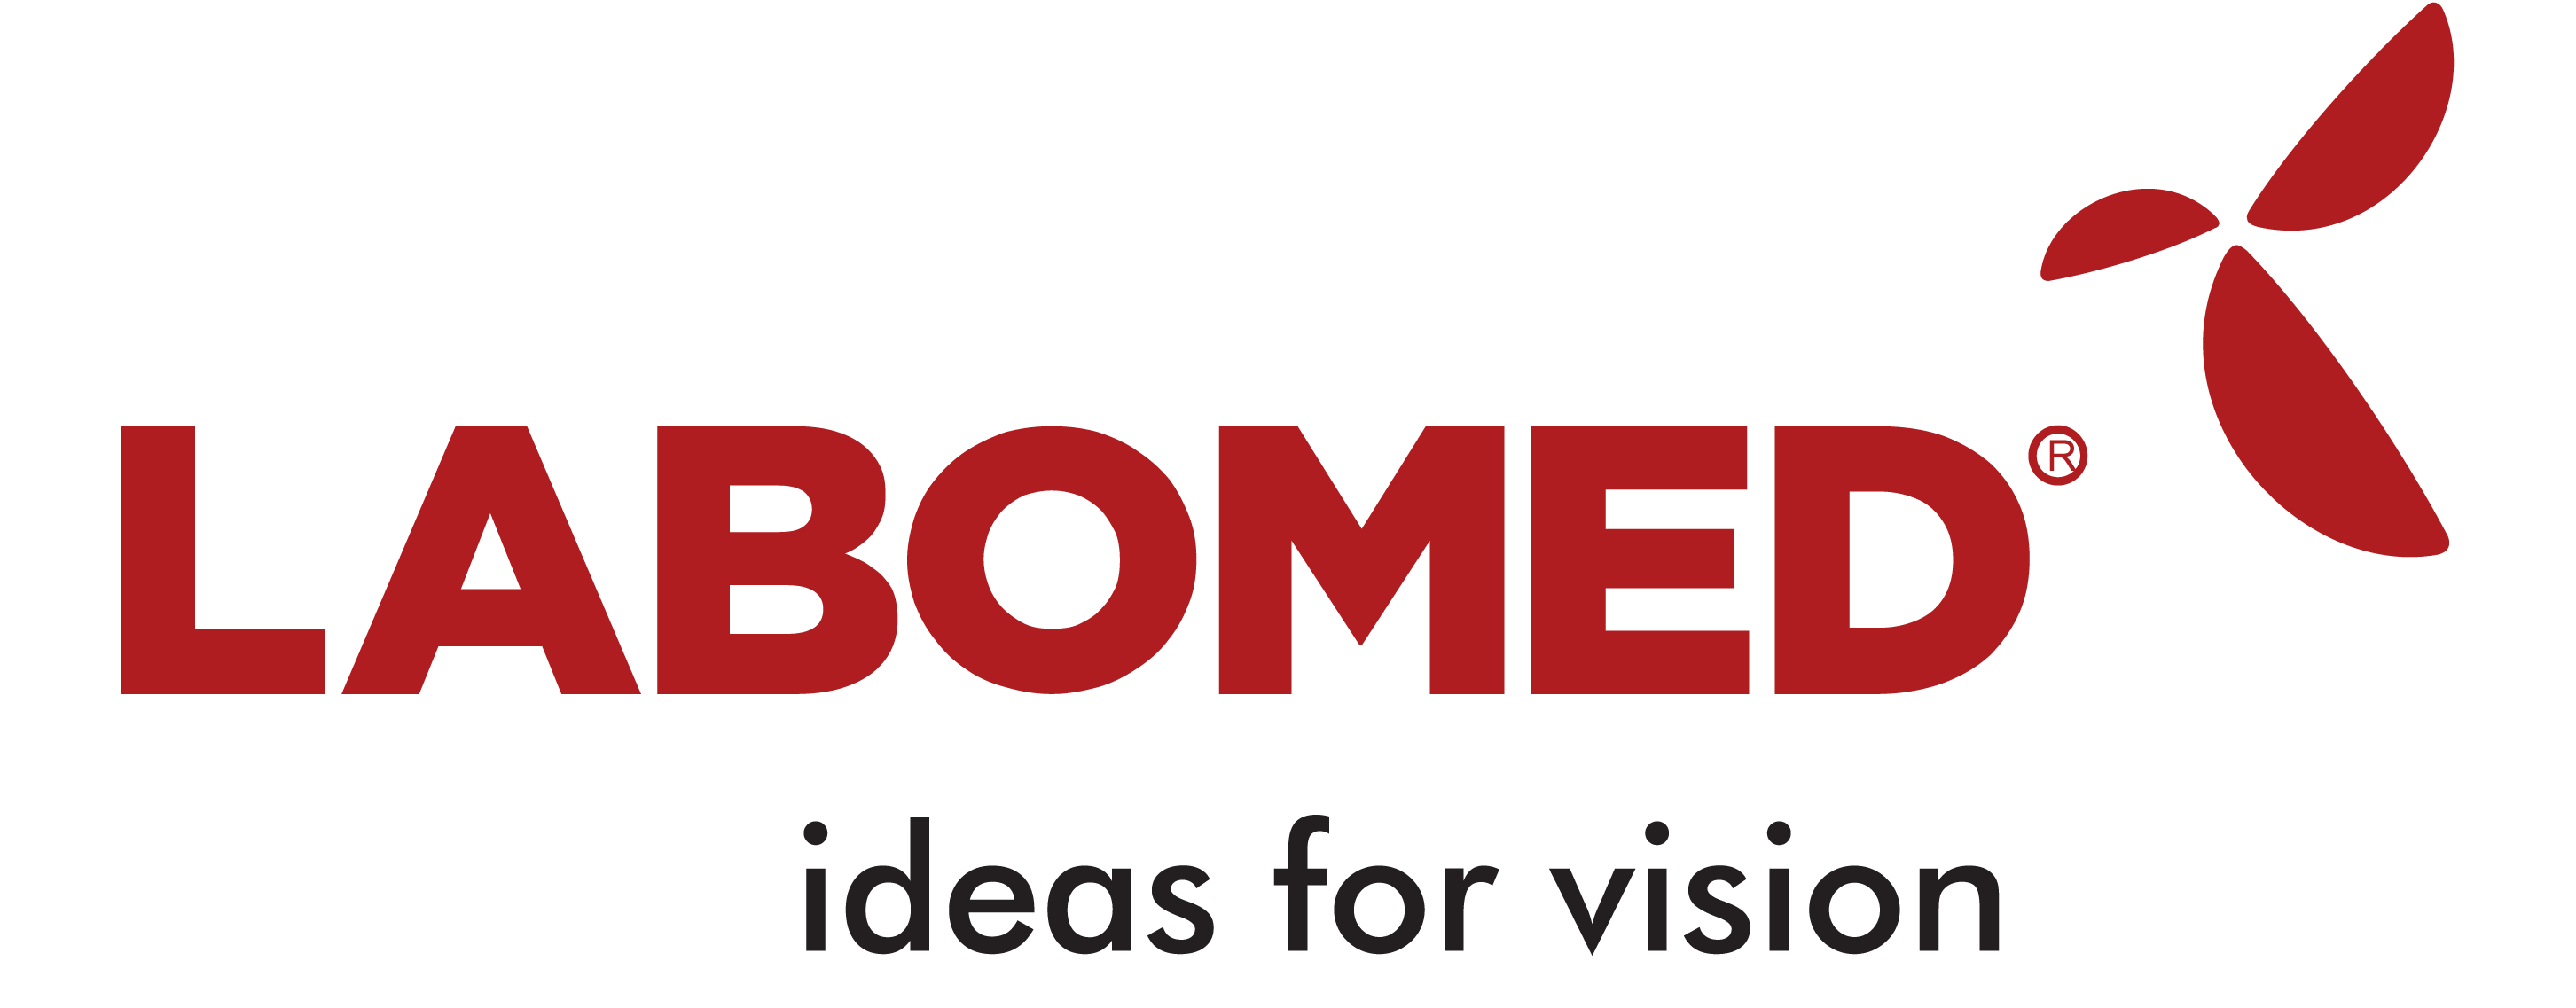 Labomed Europe logo